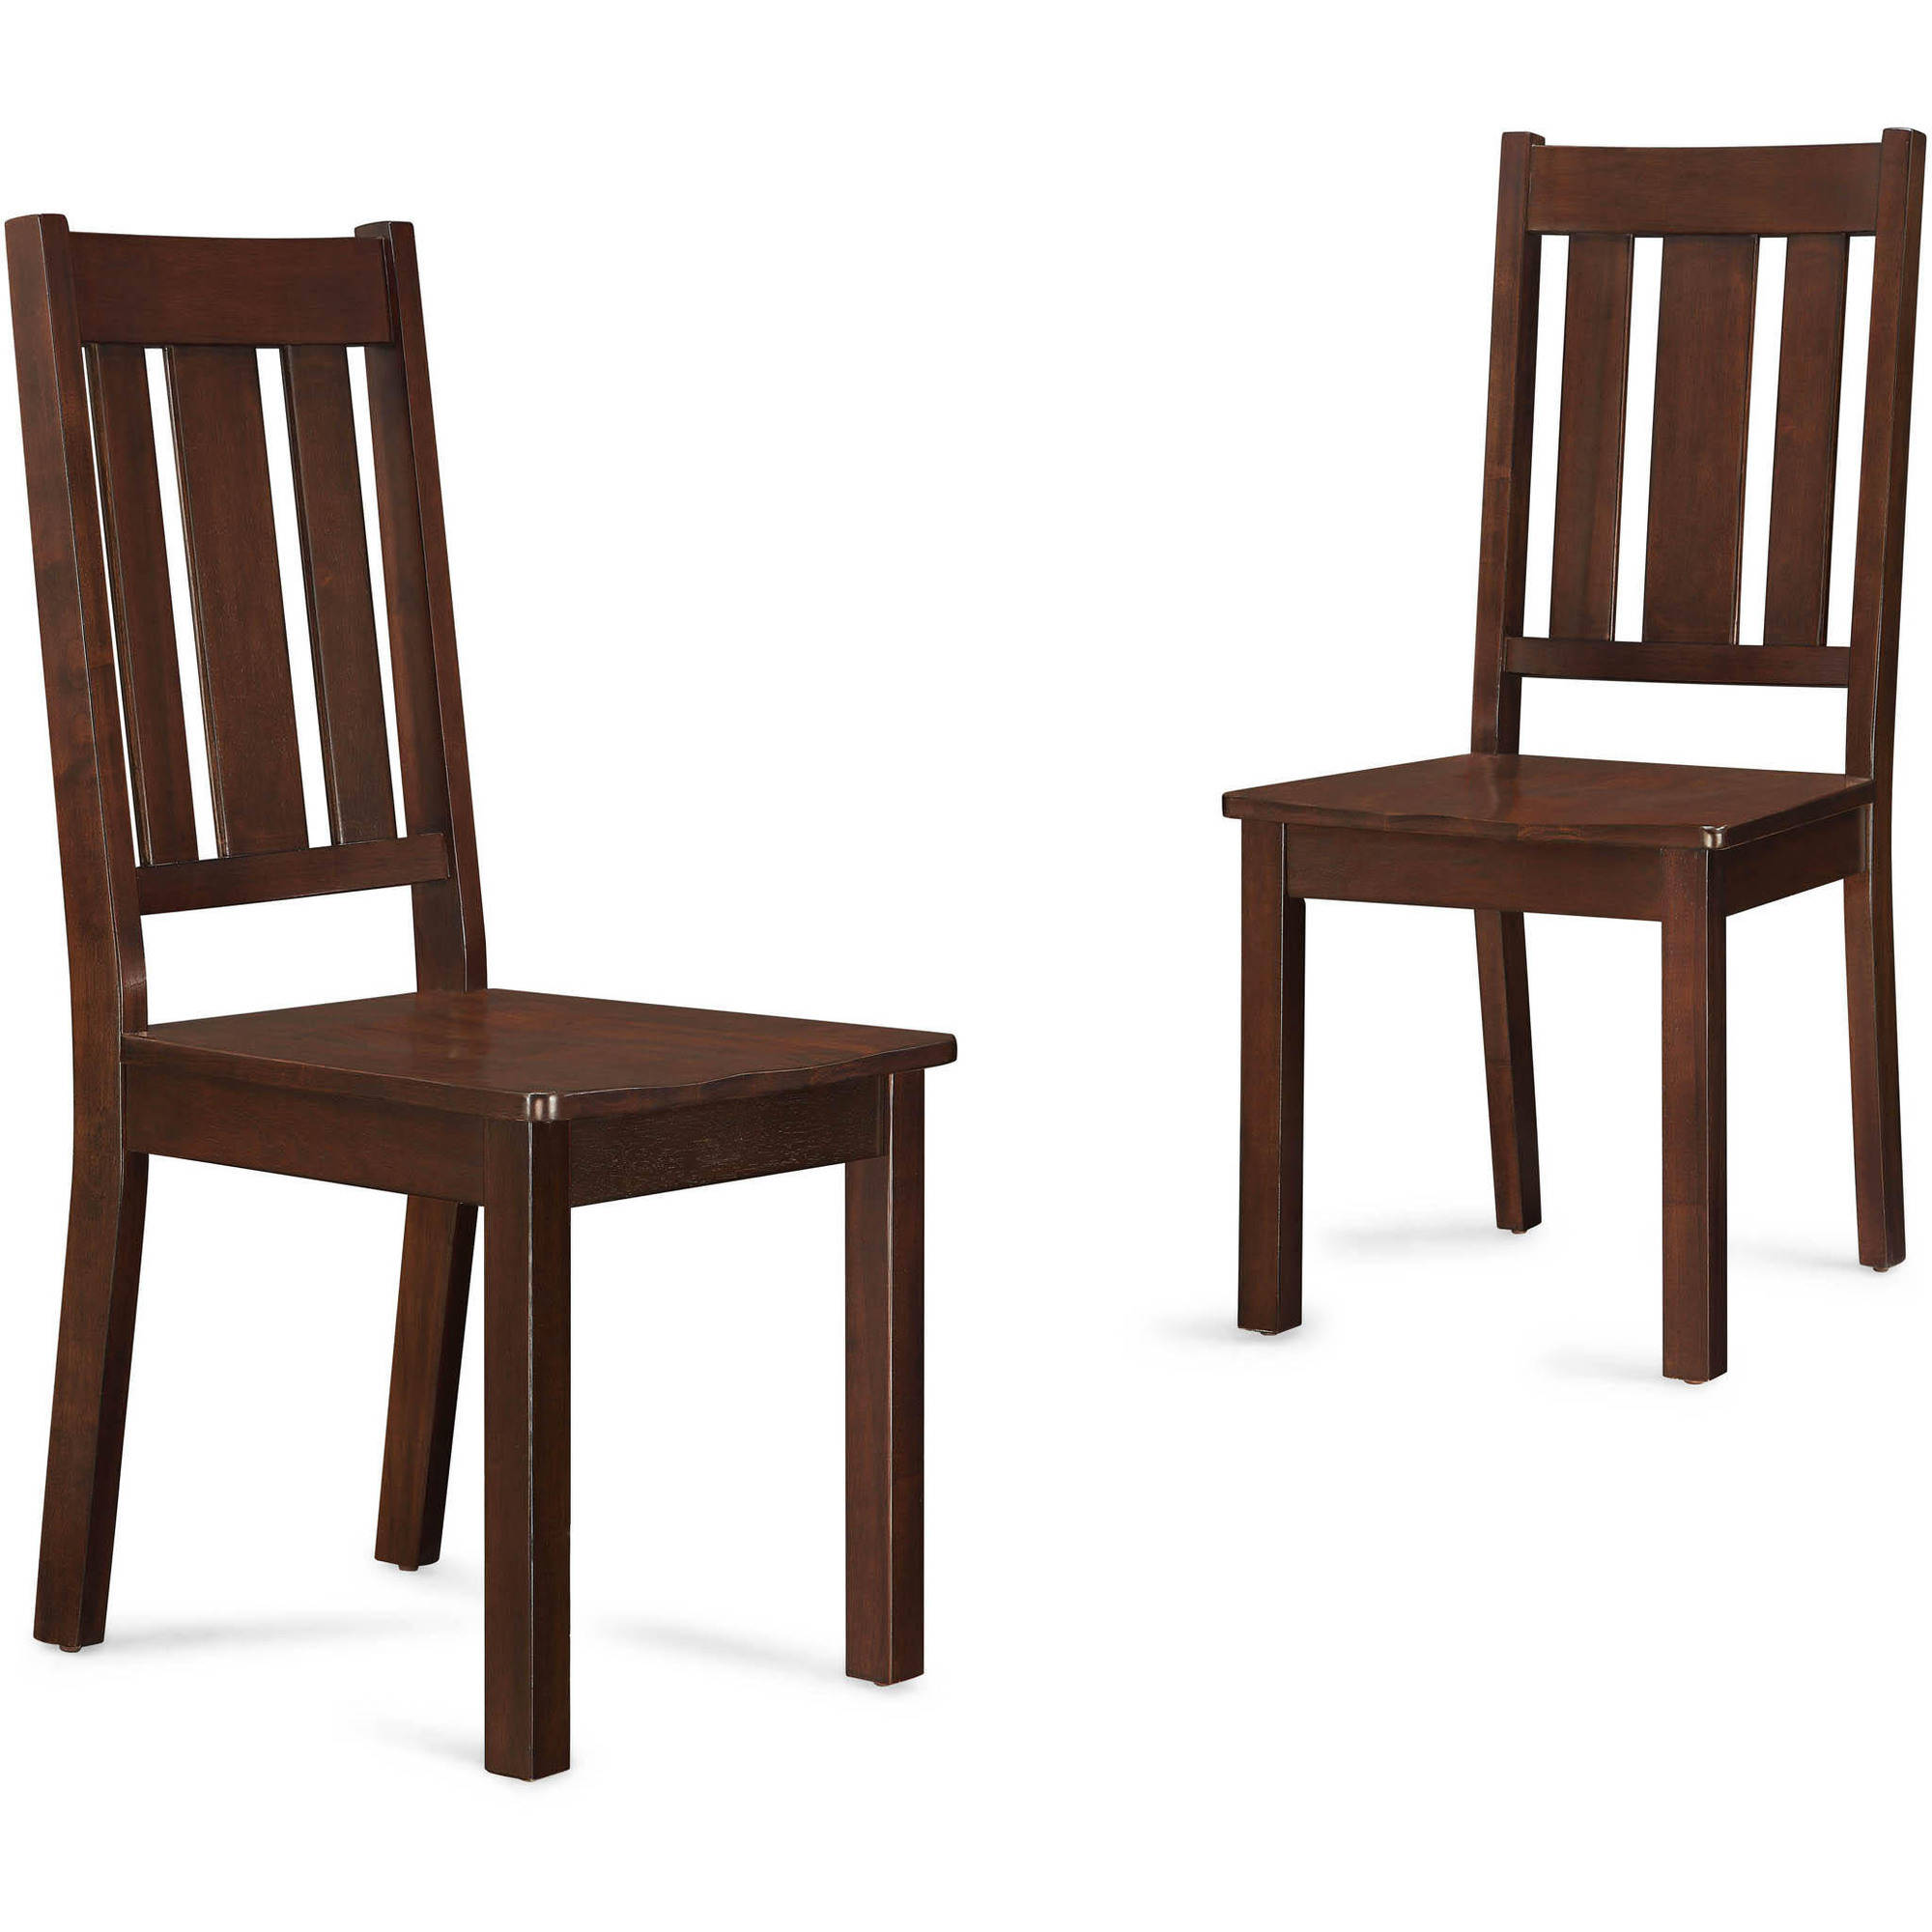 Dining Chairs better homes and gardens bankston dining chairs, set of 2, mocha